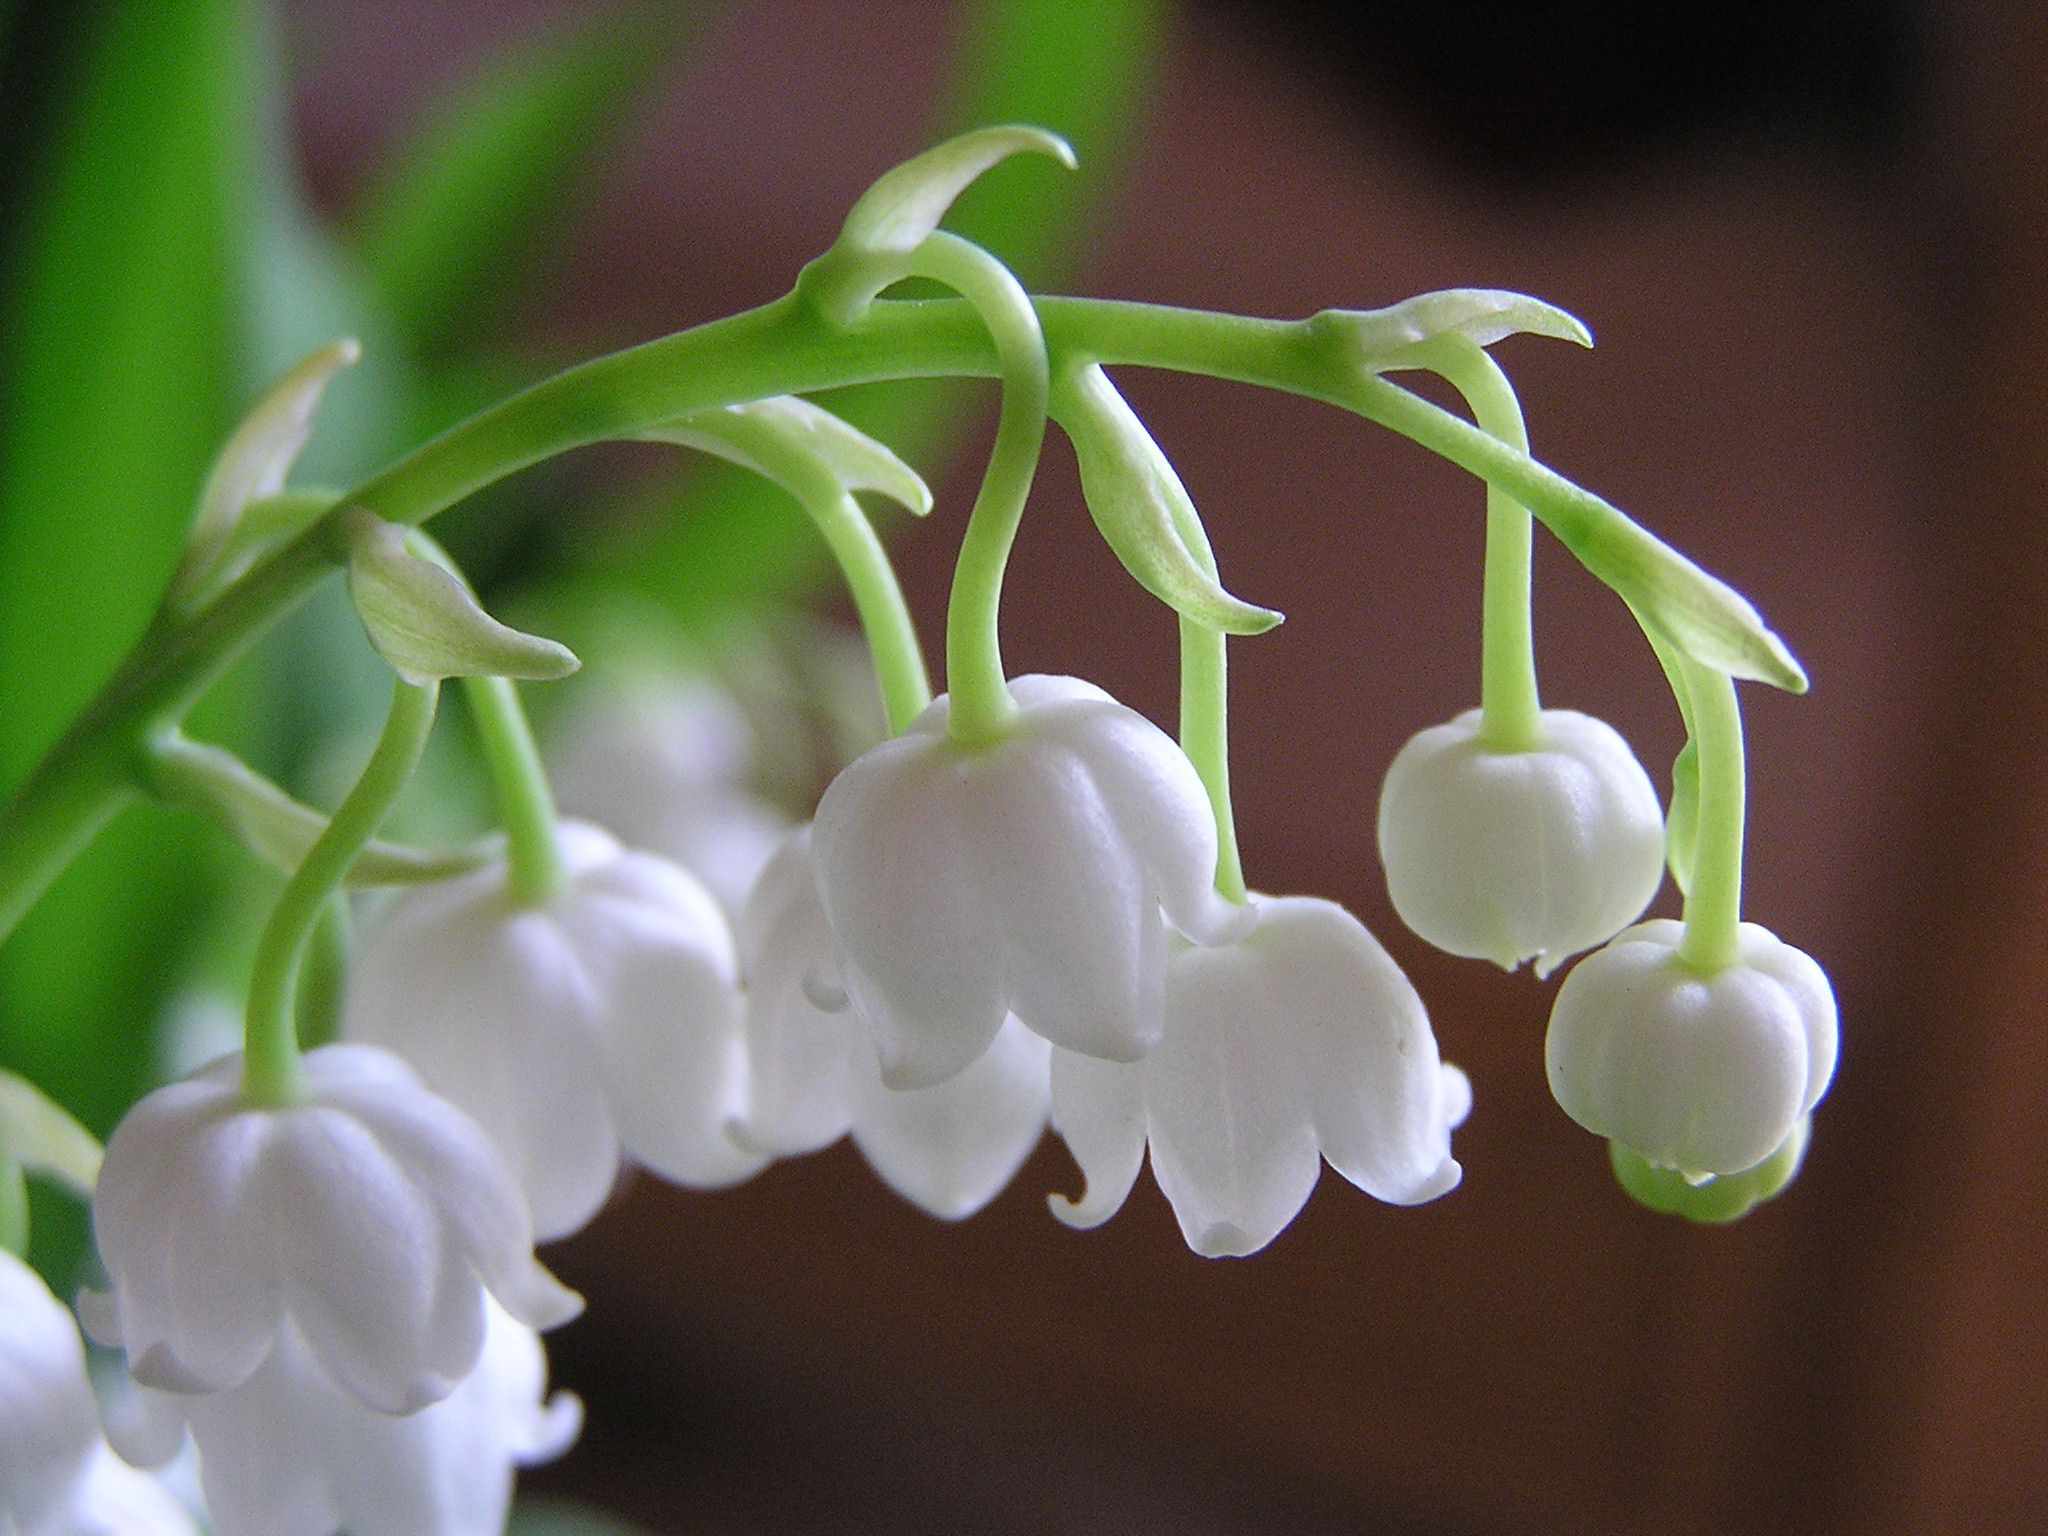 lily-of-the-valley-1524782.jpg